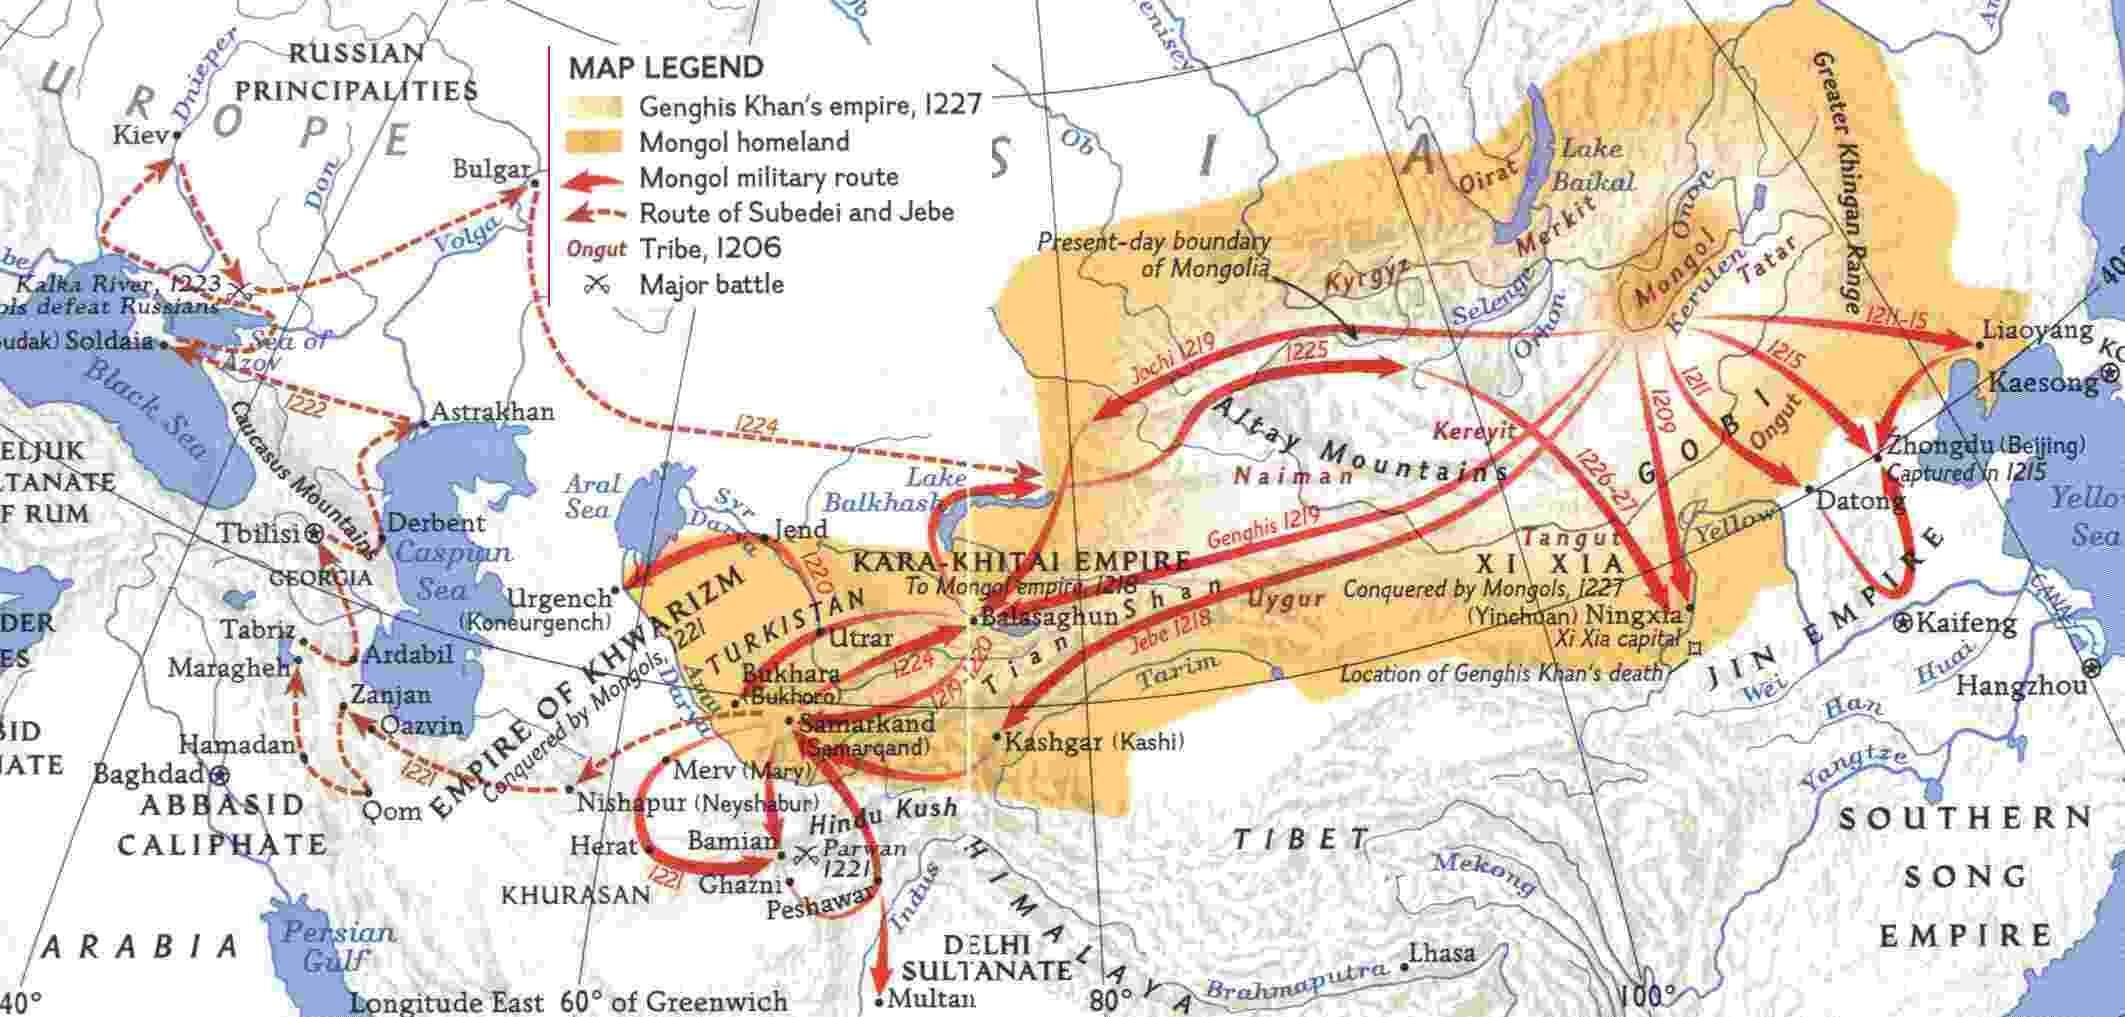 genghis khan s empire the increasing wealth along the genghis khan s empire 1227 the increasing wealth along the trade routes and the abundance